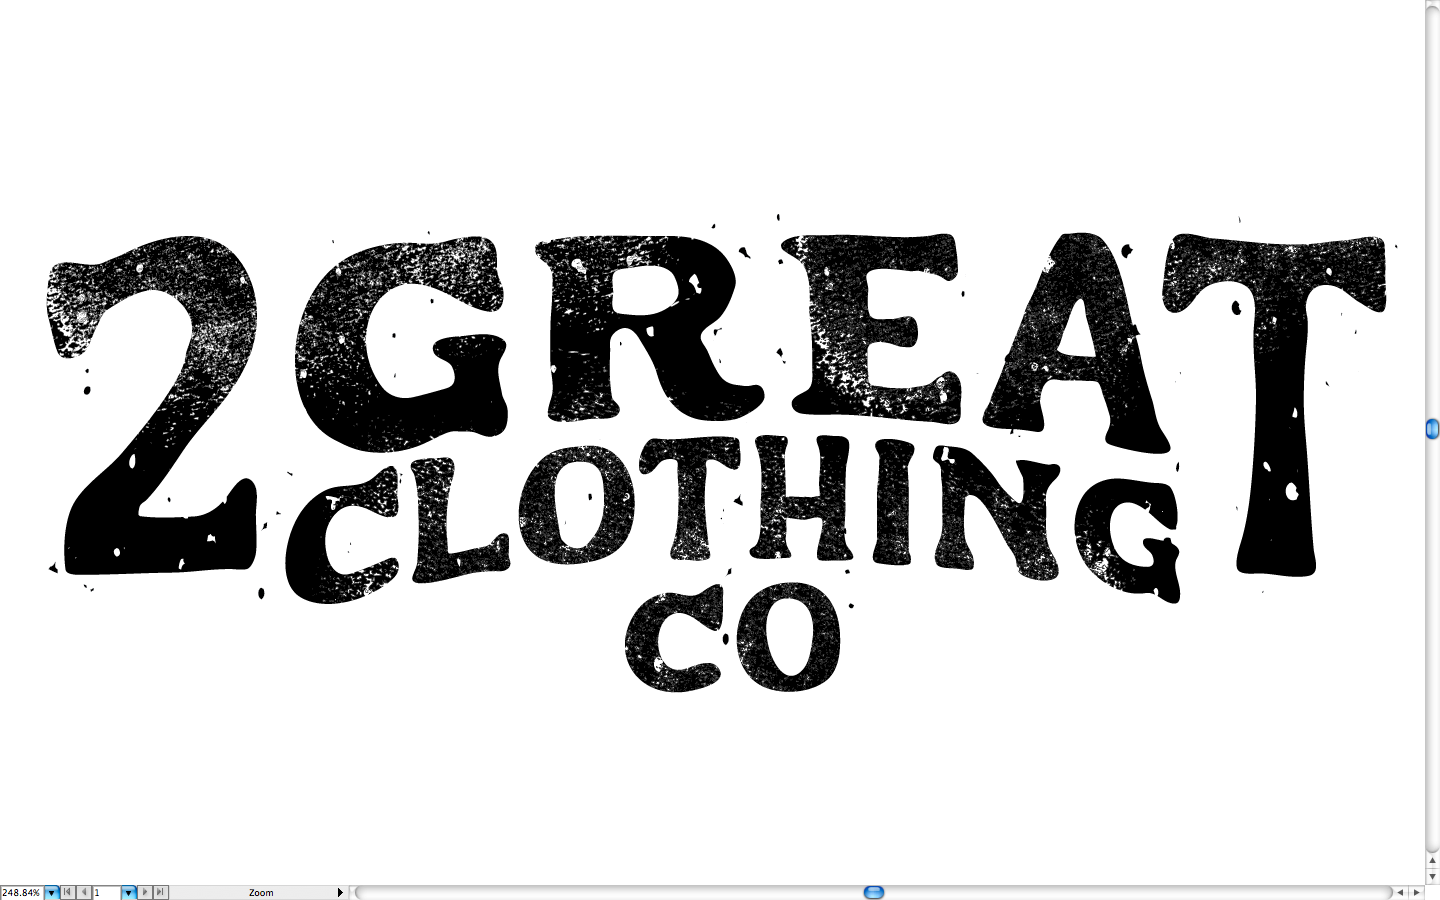 2Great Clothing Co. - image 22 - student project